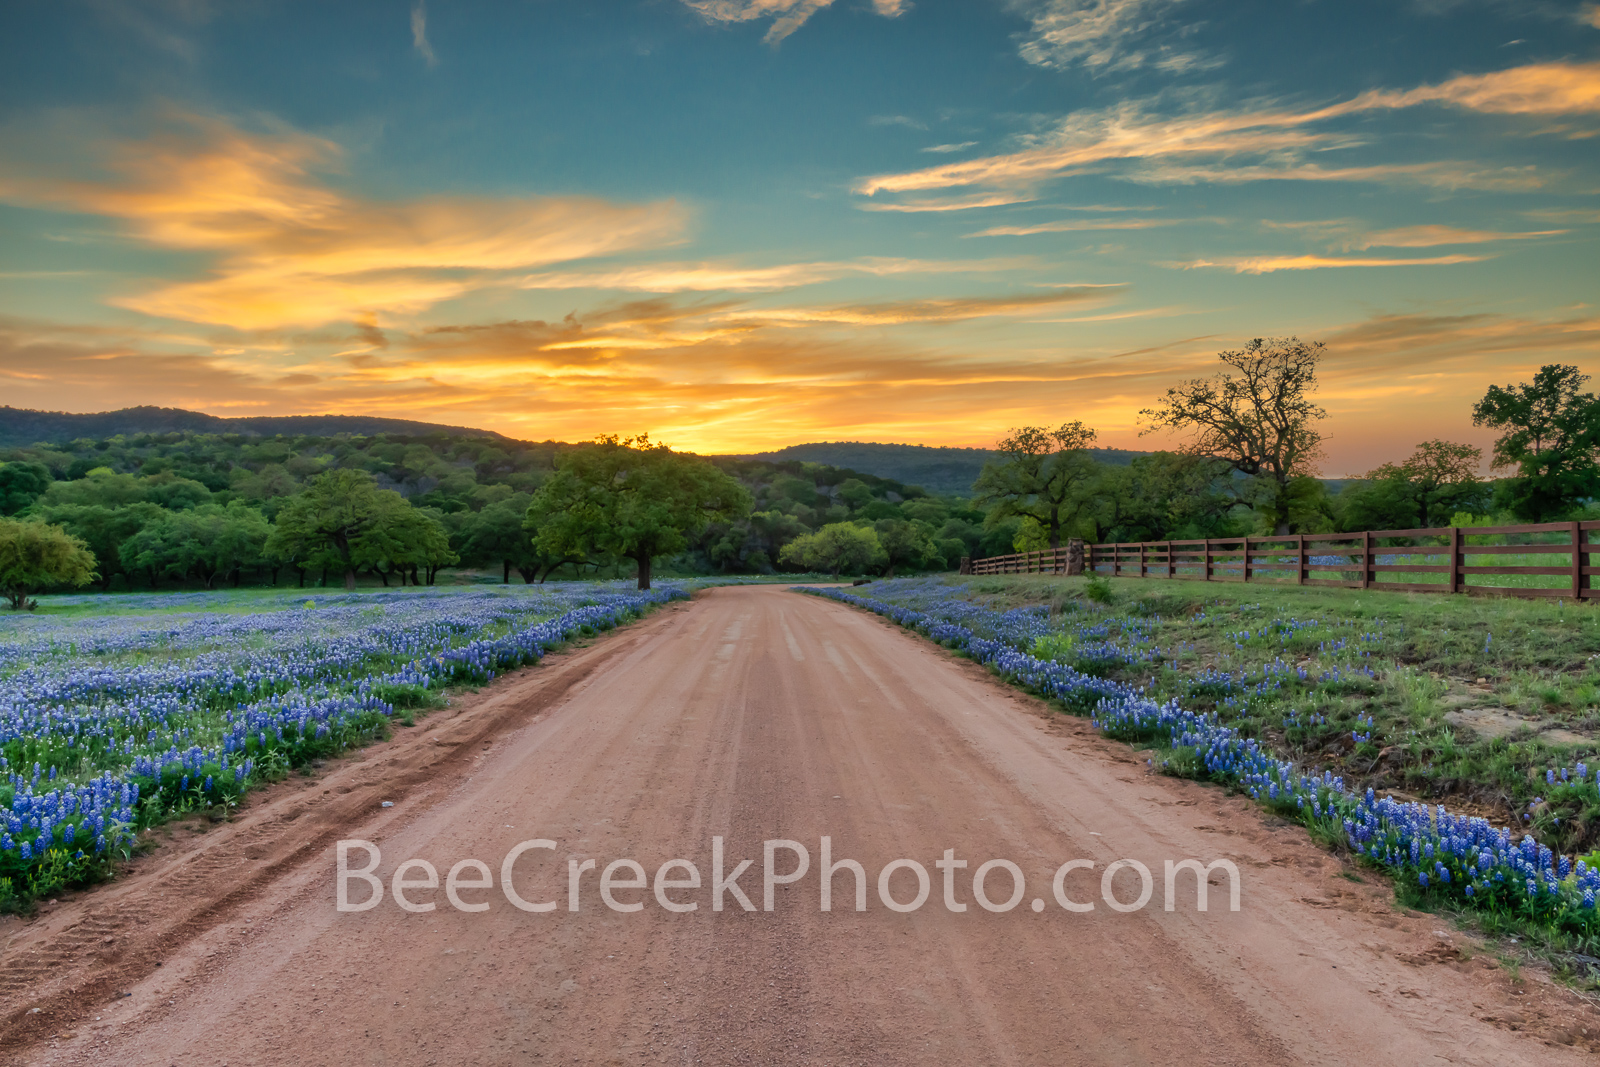 bluebonnets, Texas bluebonnets, texas hill country, texas wildflowers, sunset, dirt road, texas, scenery, texas landscape, hill country, hill country landscape, spring, bluebonnet road, wildflowers,  , photo